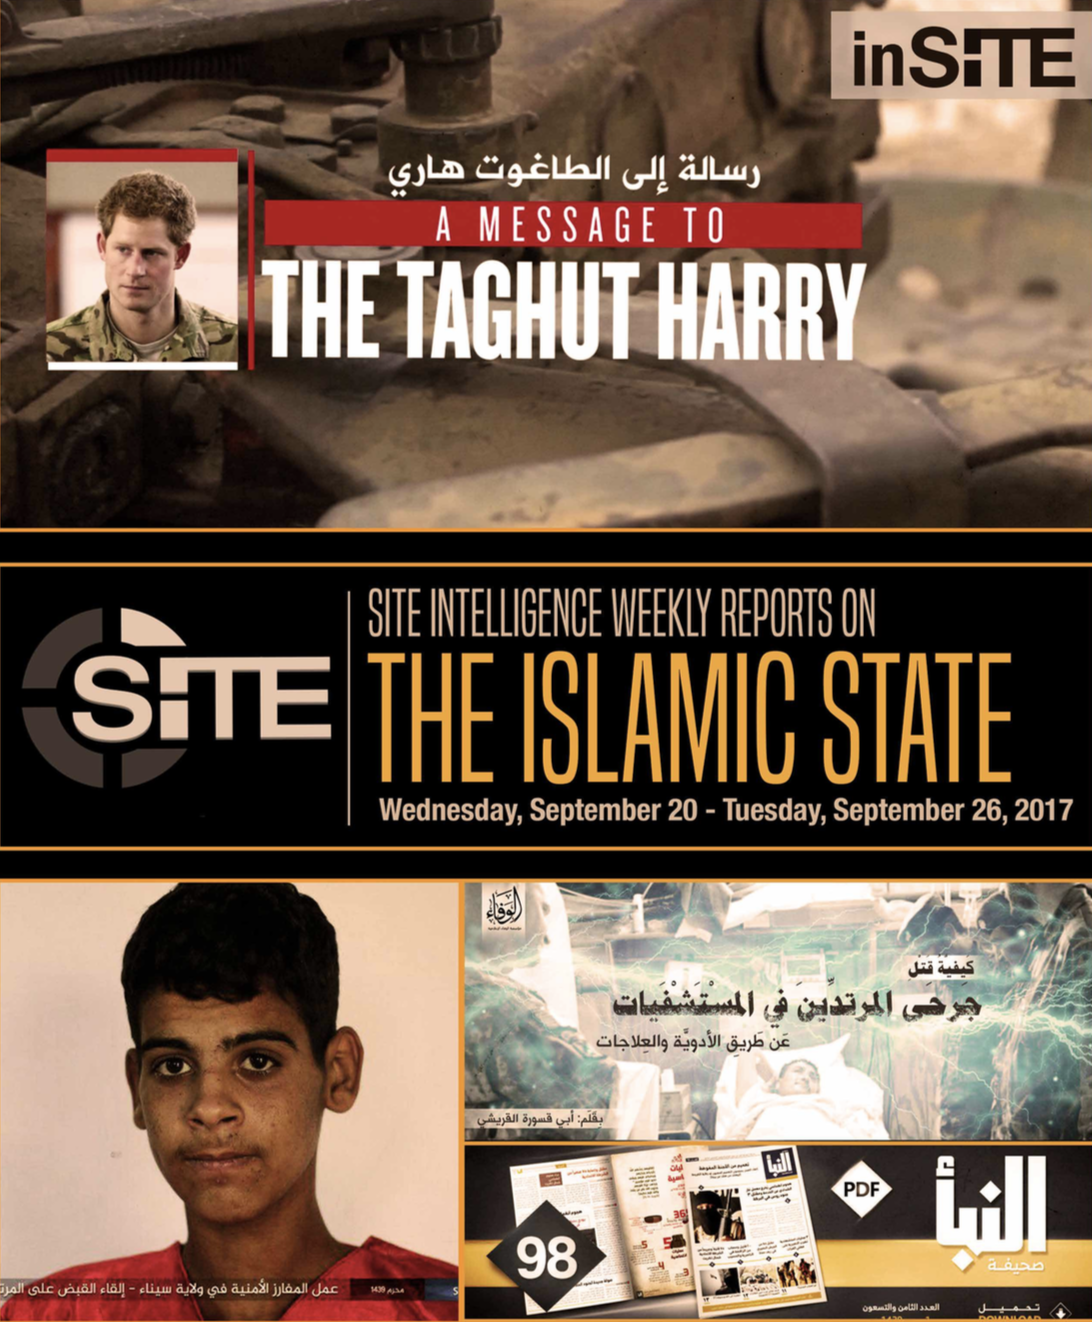 Weekly inSITE on the Islamic State, September 20-26